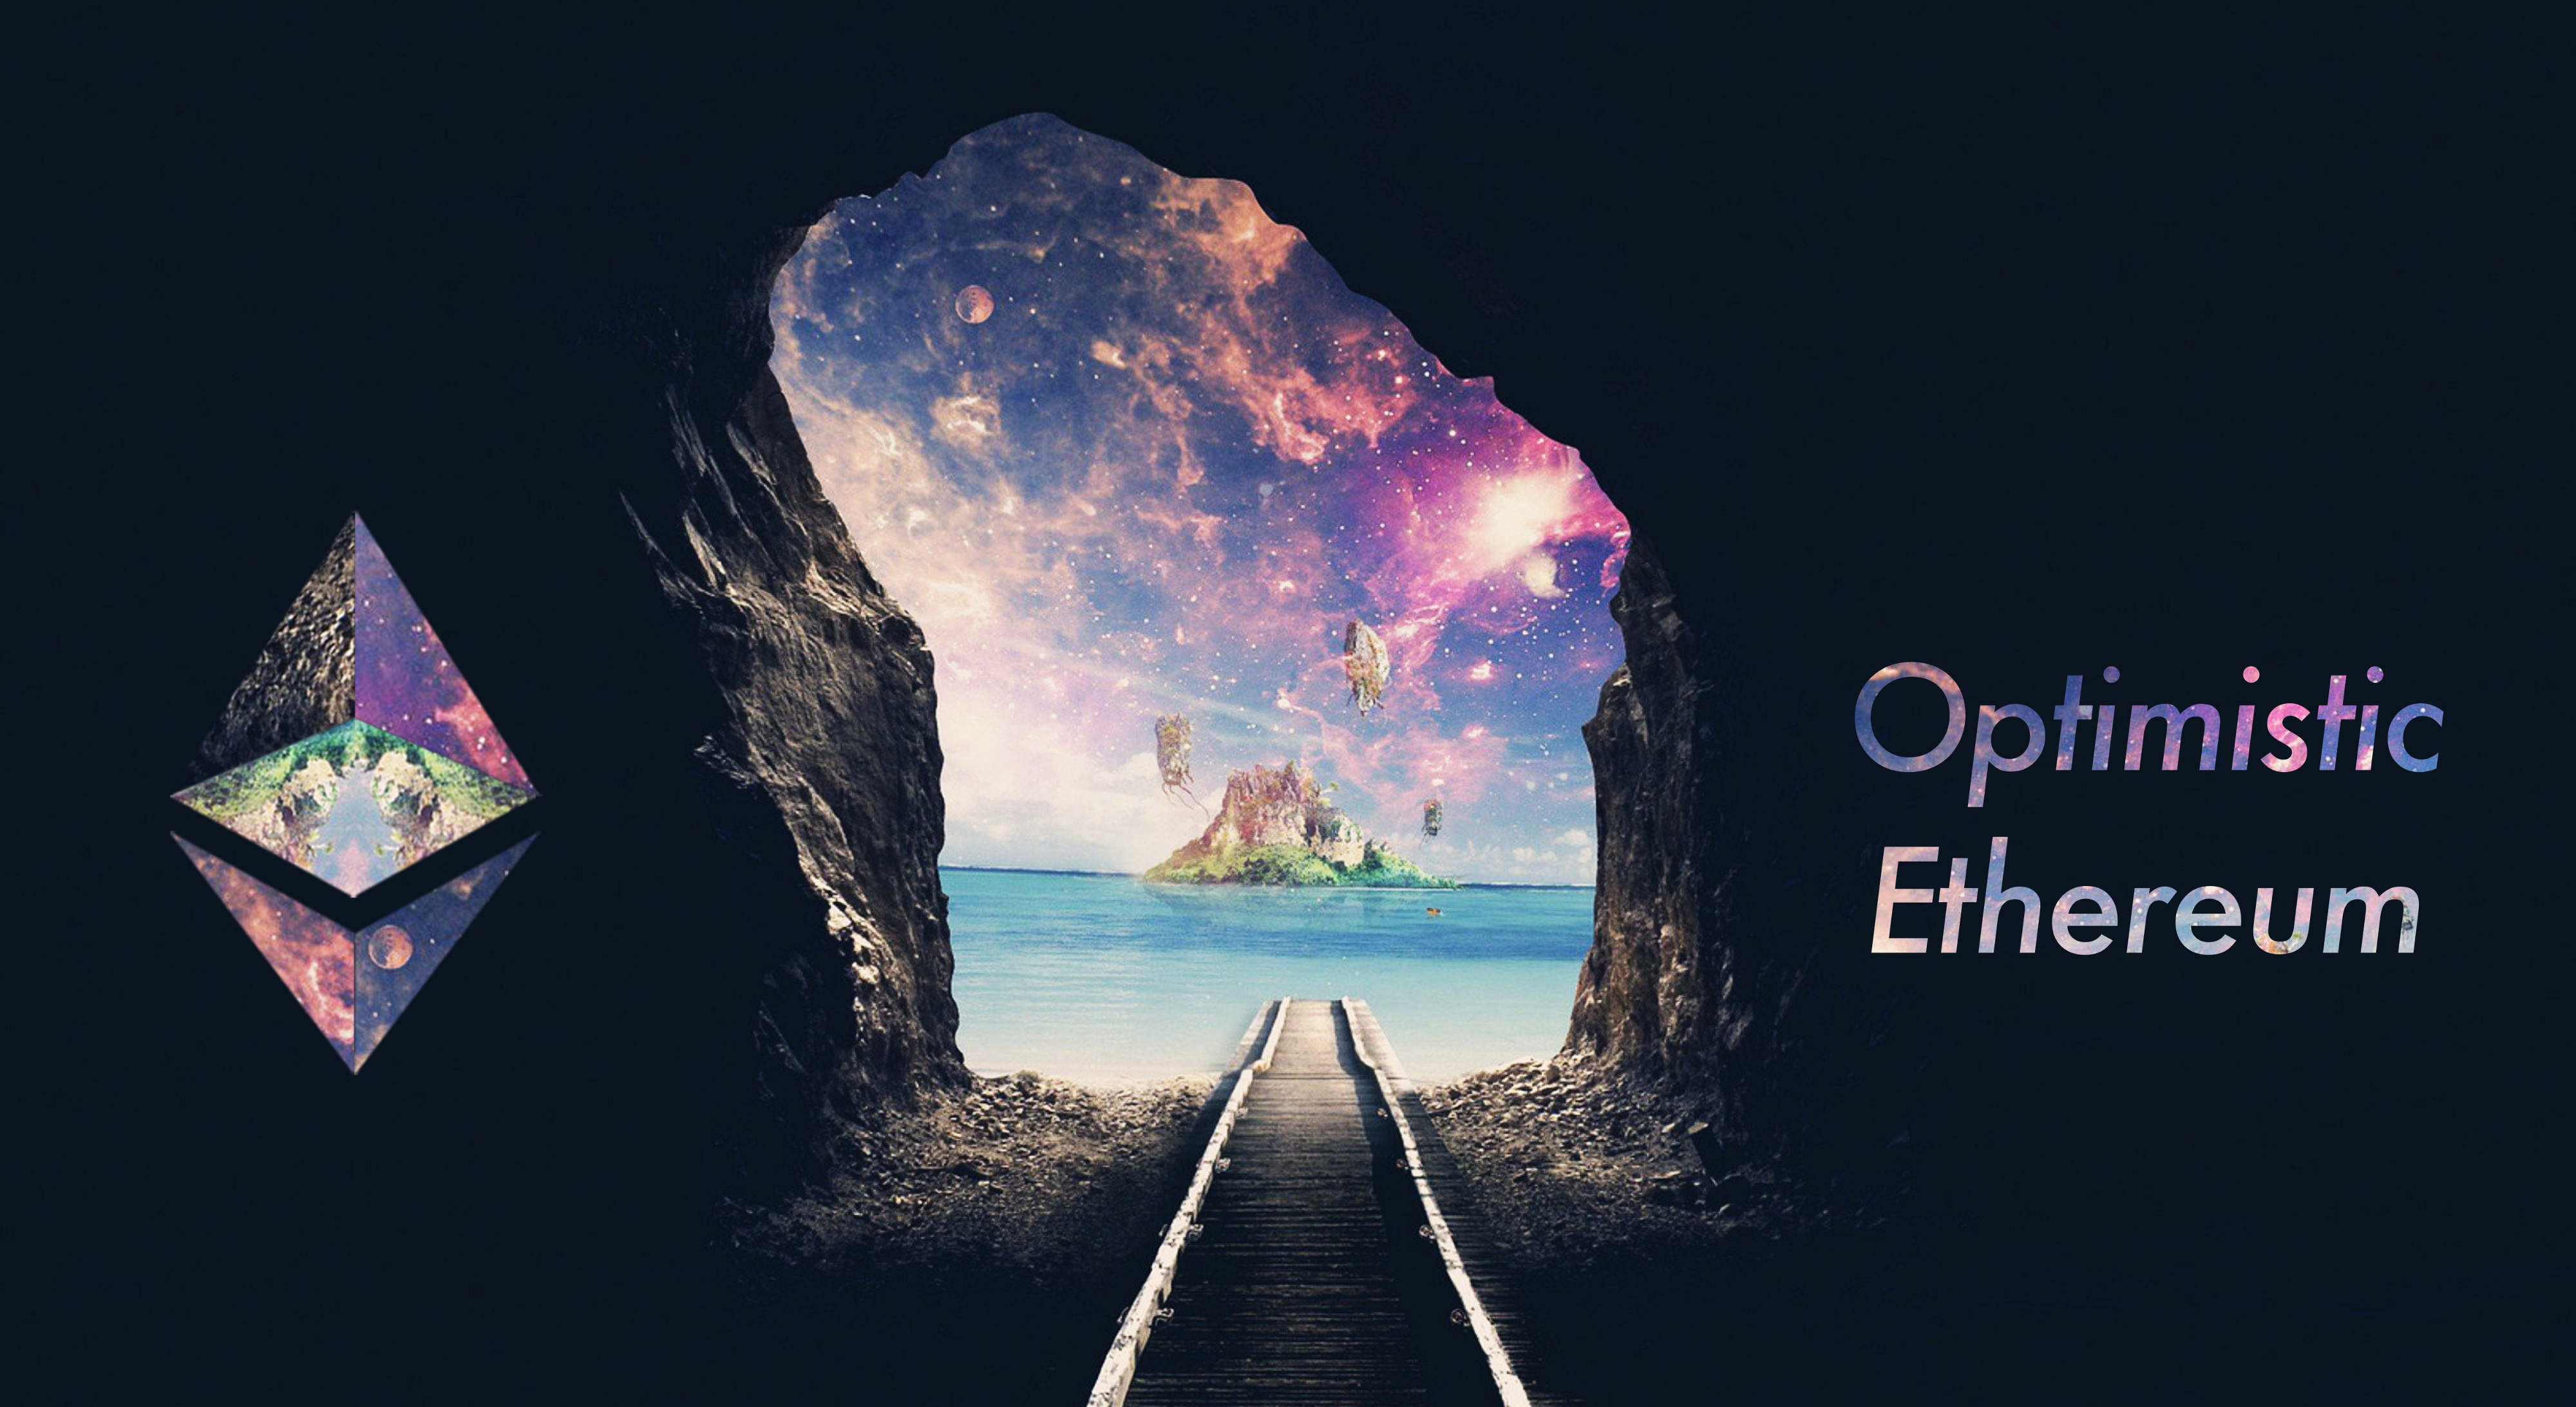 """Mystical island landscape emerging at the end of a long tunnel, flanked by an Ethereum logo and """"Optimistic Ethereum""""."""